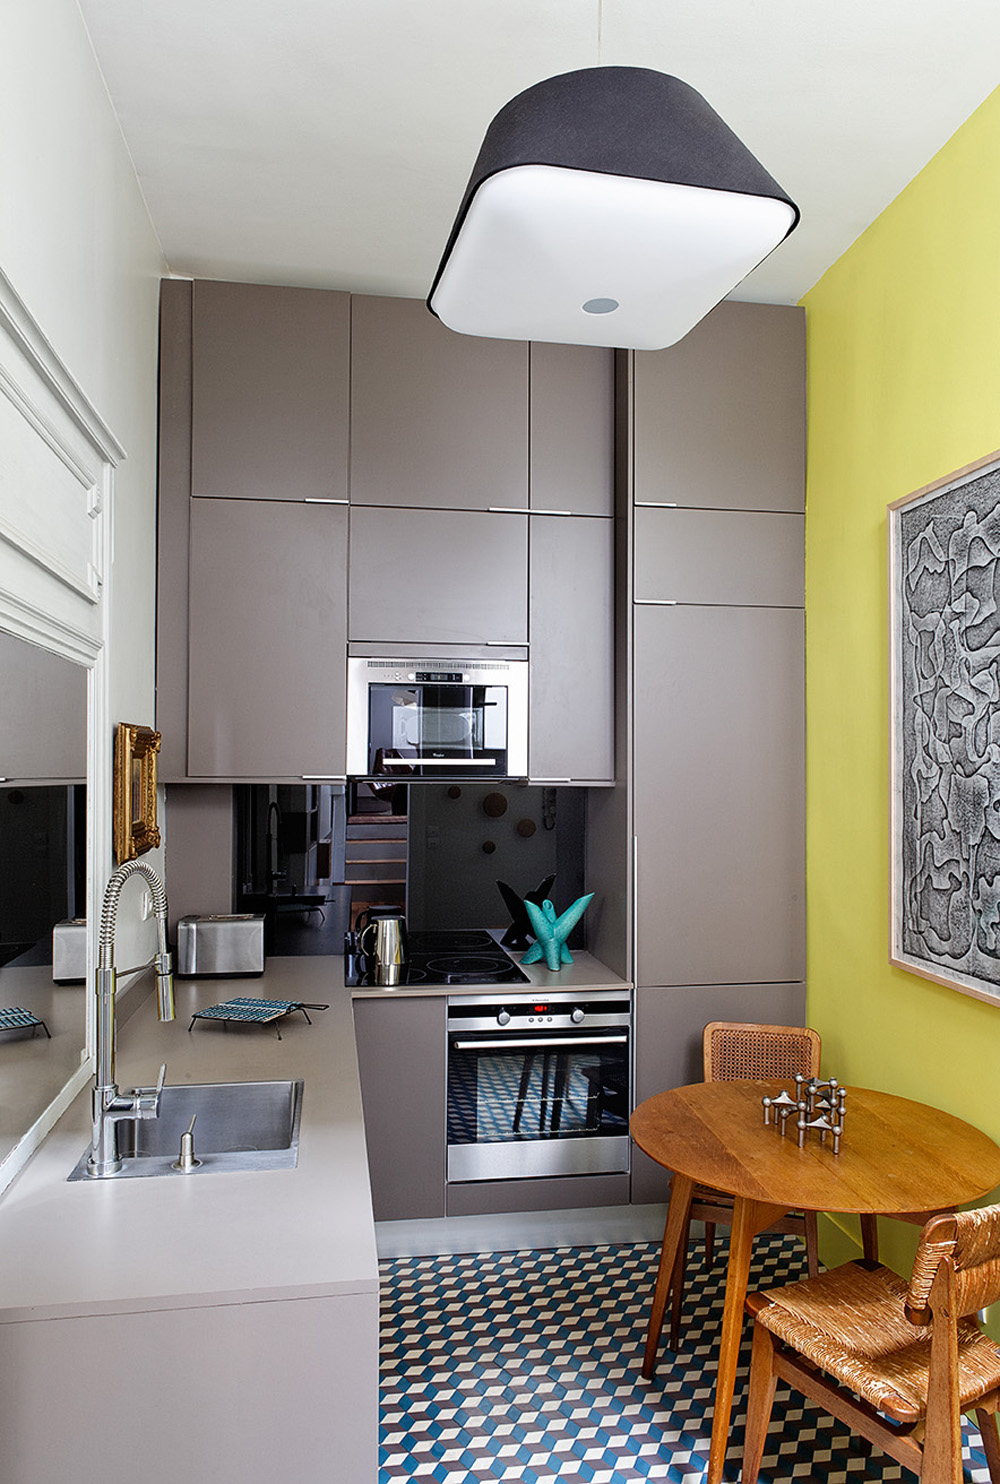 Best Small Kitchen Renovations: 50 Best Small Kitchen Ideas And Designs For 2016